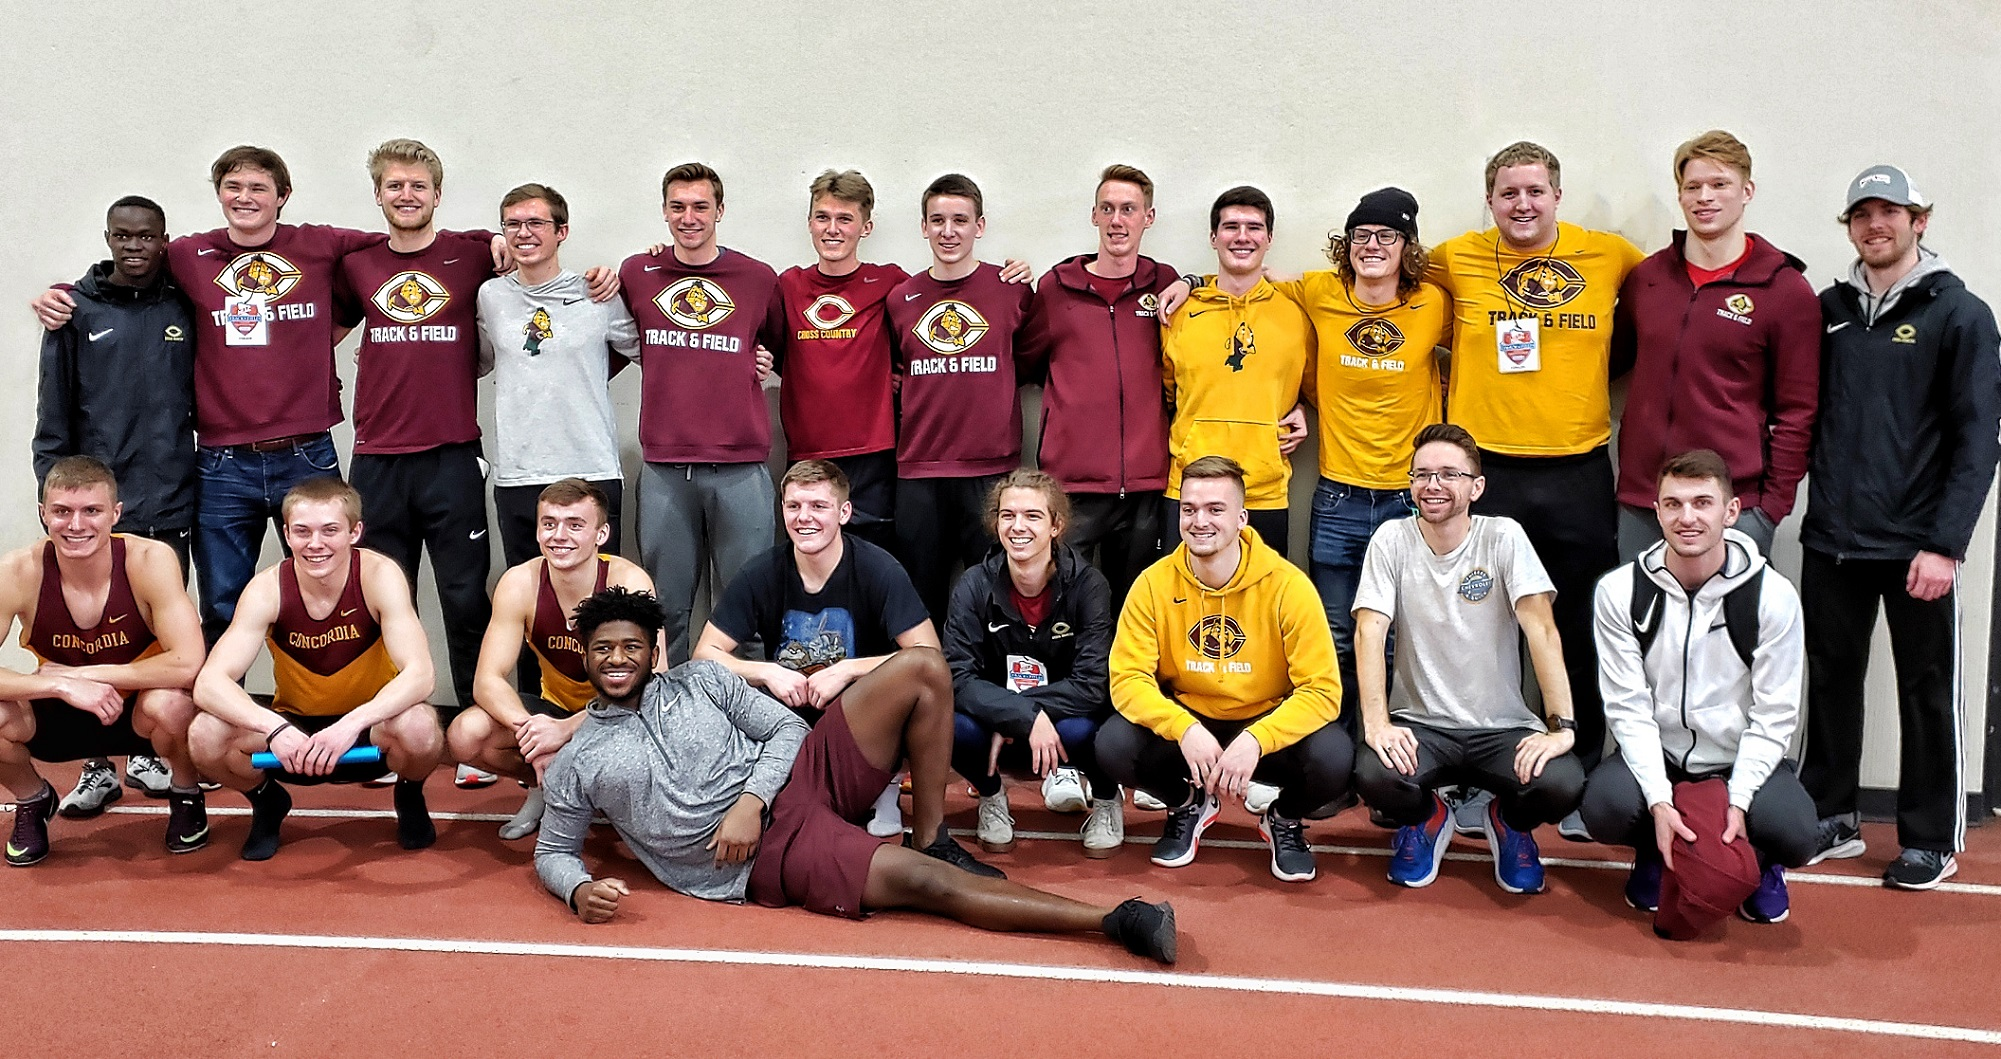 The Cobber men's track and field team posted its highest finish at the MIAC Indoor Meet since the 2000 season.